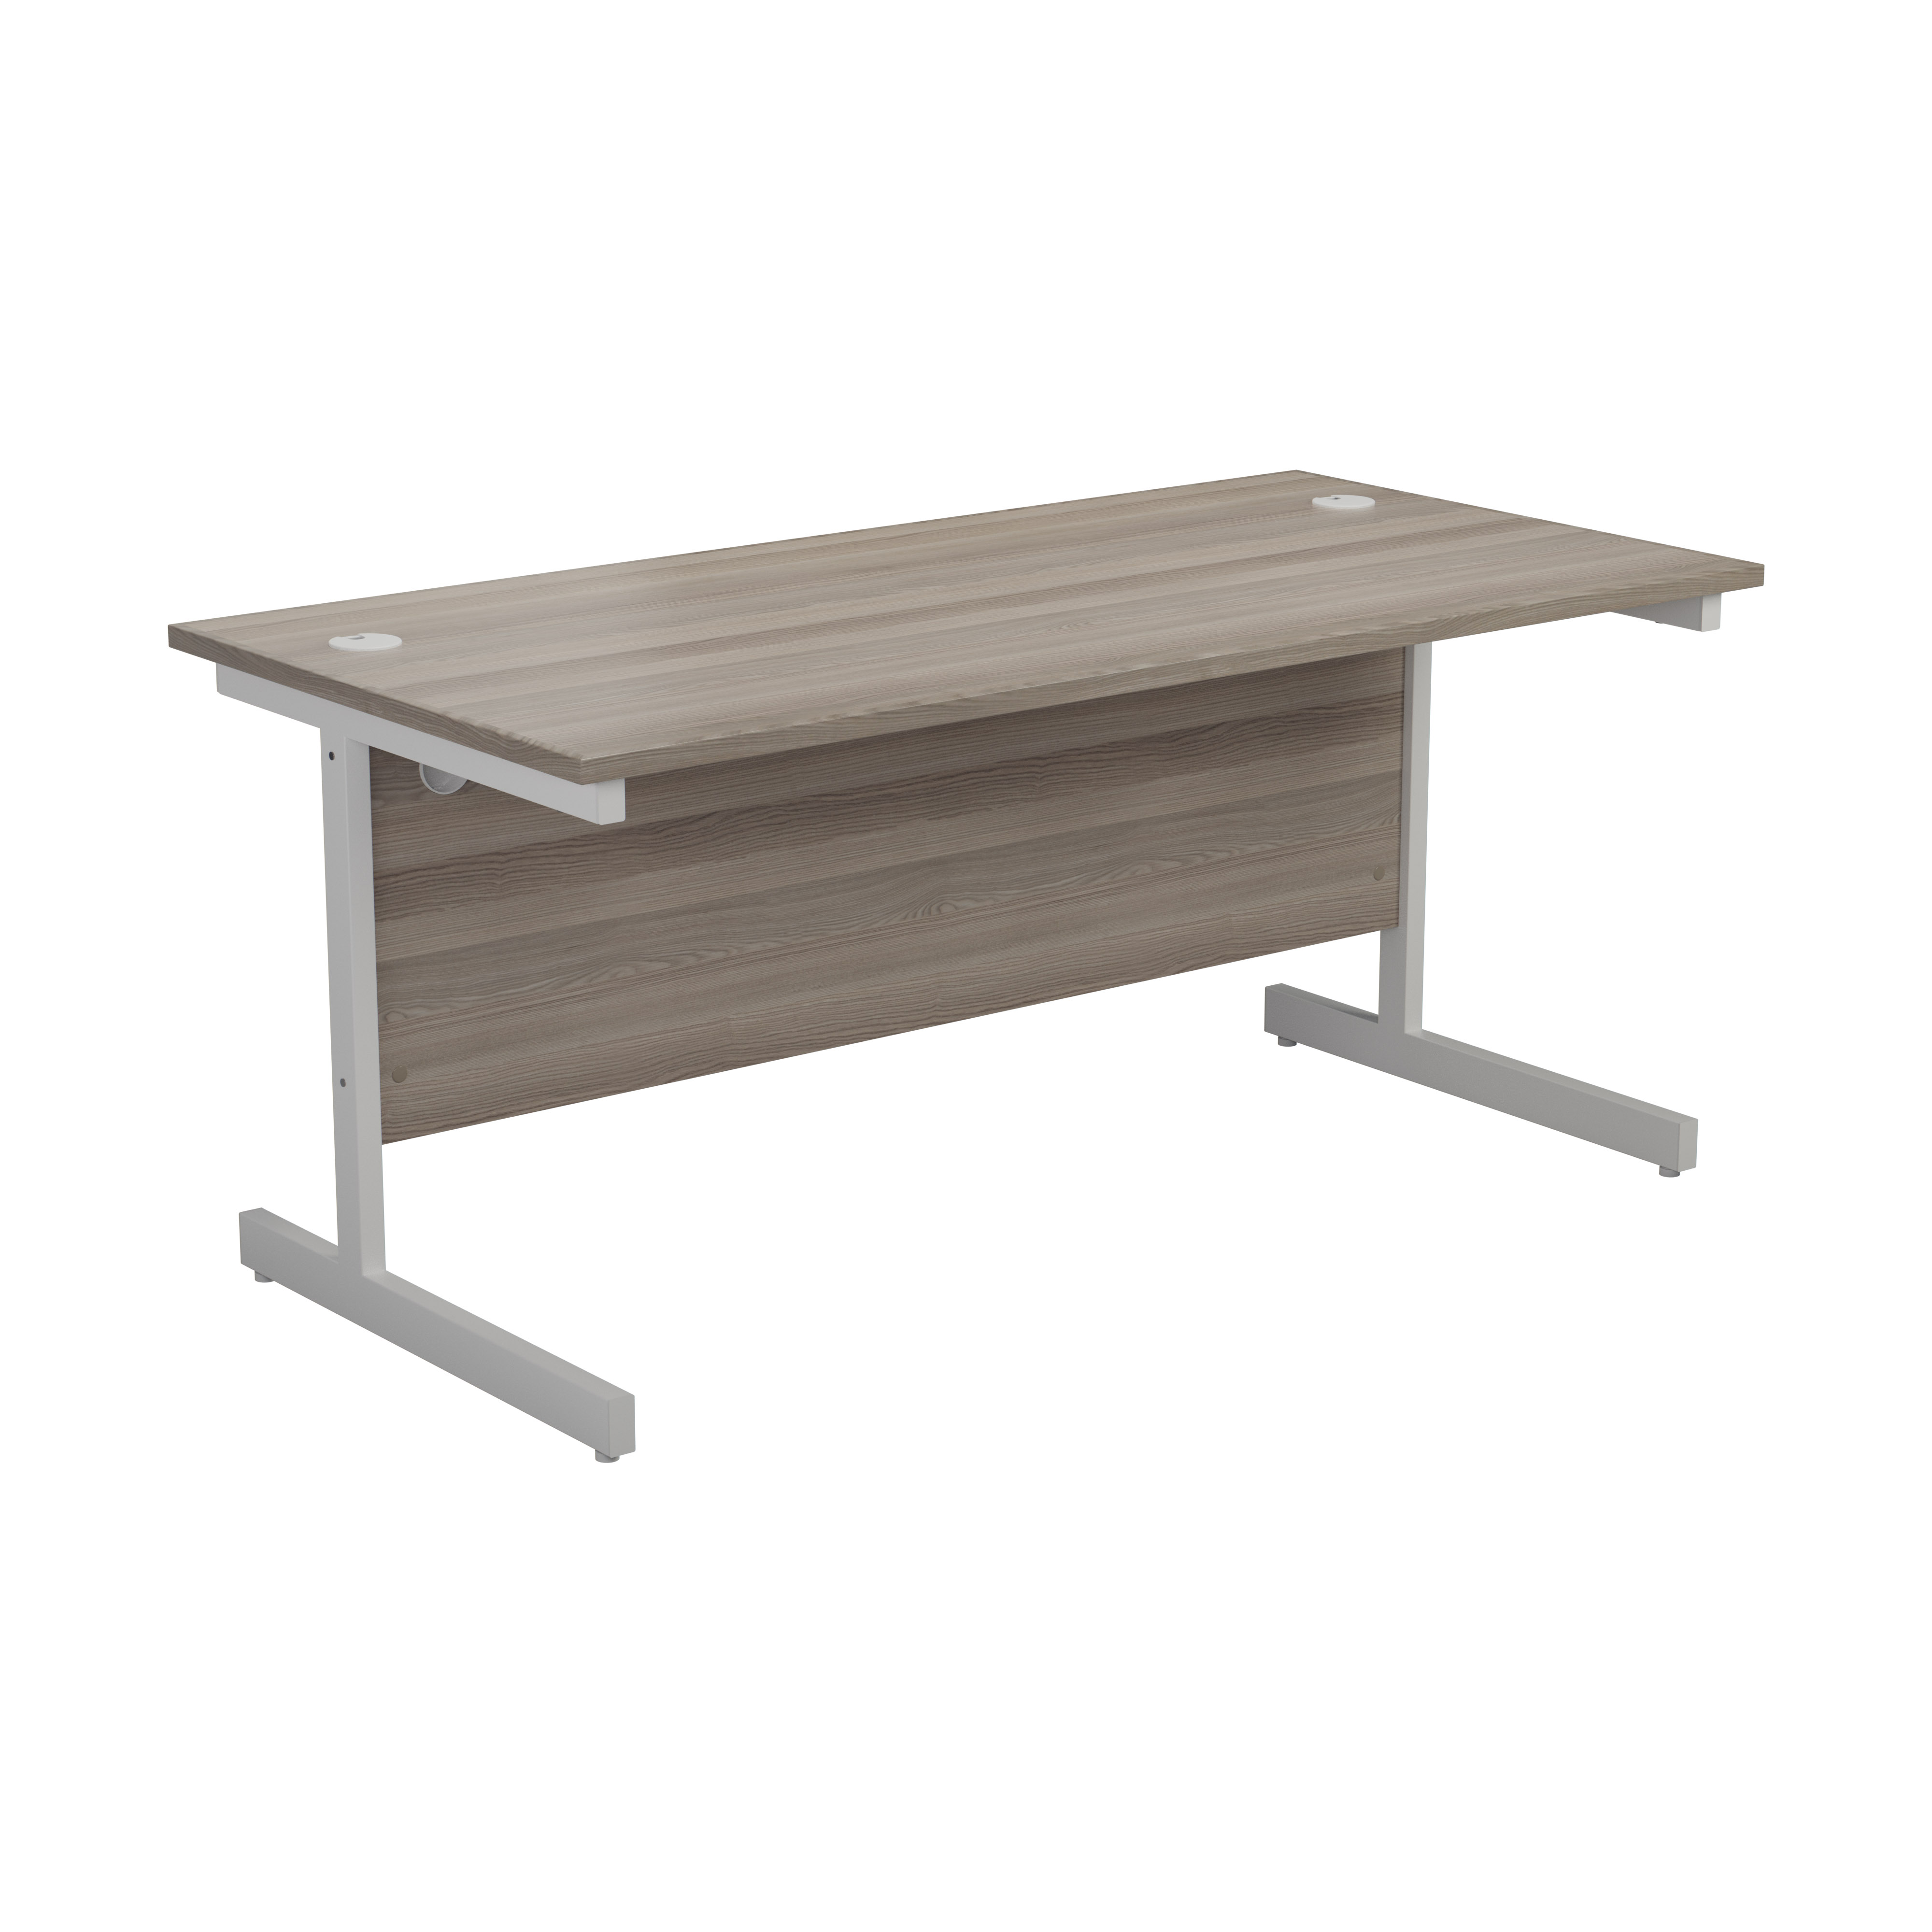 One Cantilever 1200 Rectangular Cantilever Workstation - Grey Oak Top White Legs